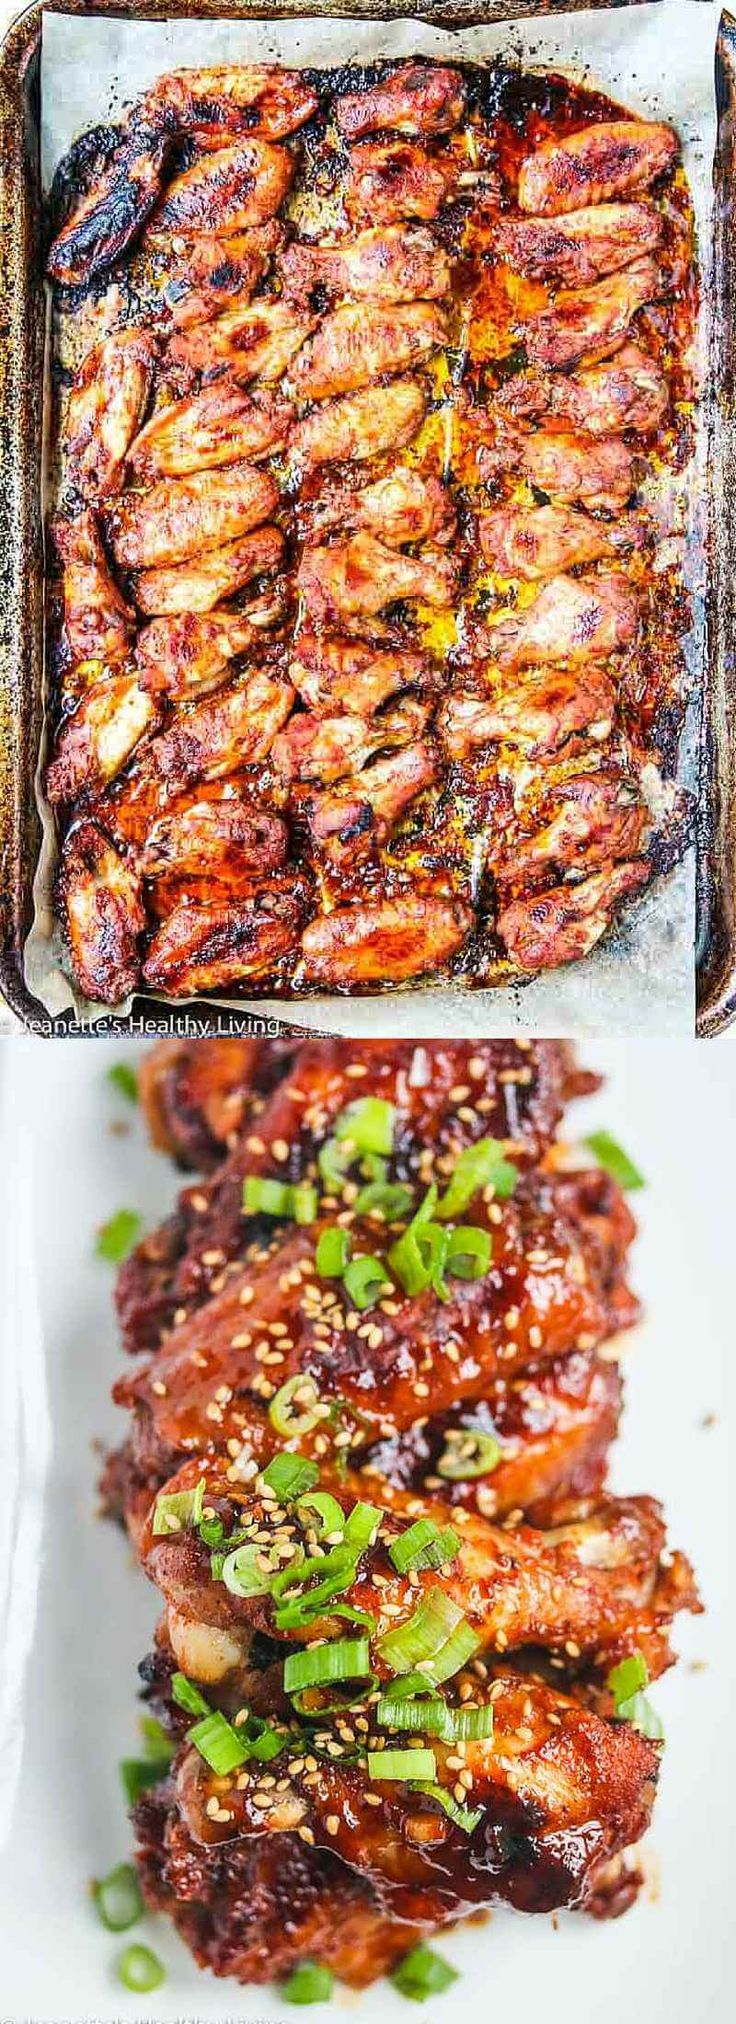 Baked Korean Gochujang Chicken Wings - these wings are sweet, spicy and perfect for a party. You can oven bake them or grill them - the marinade is the key